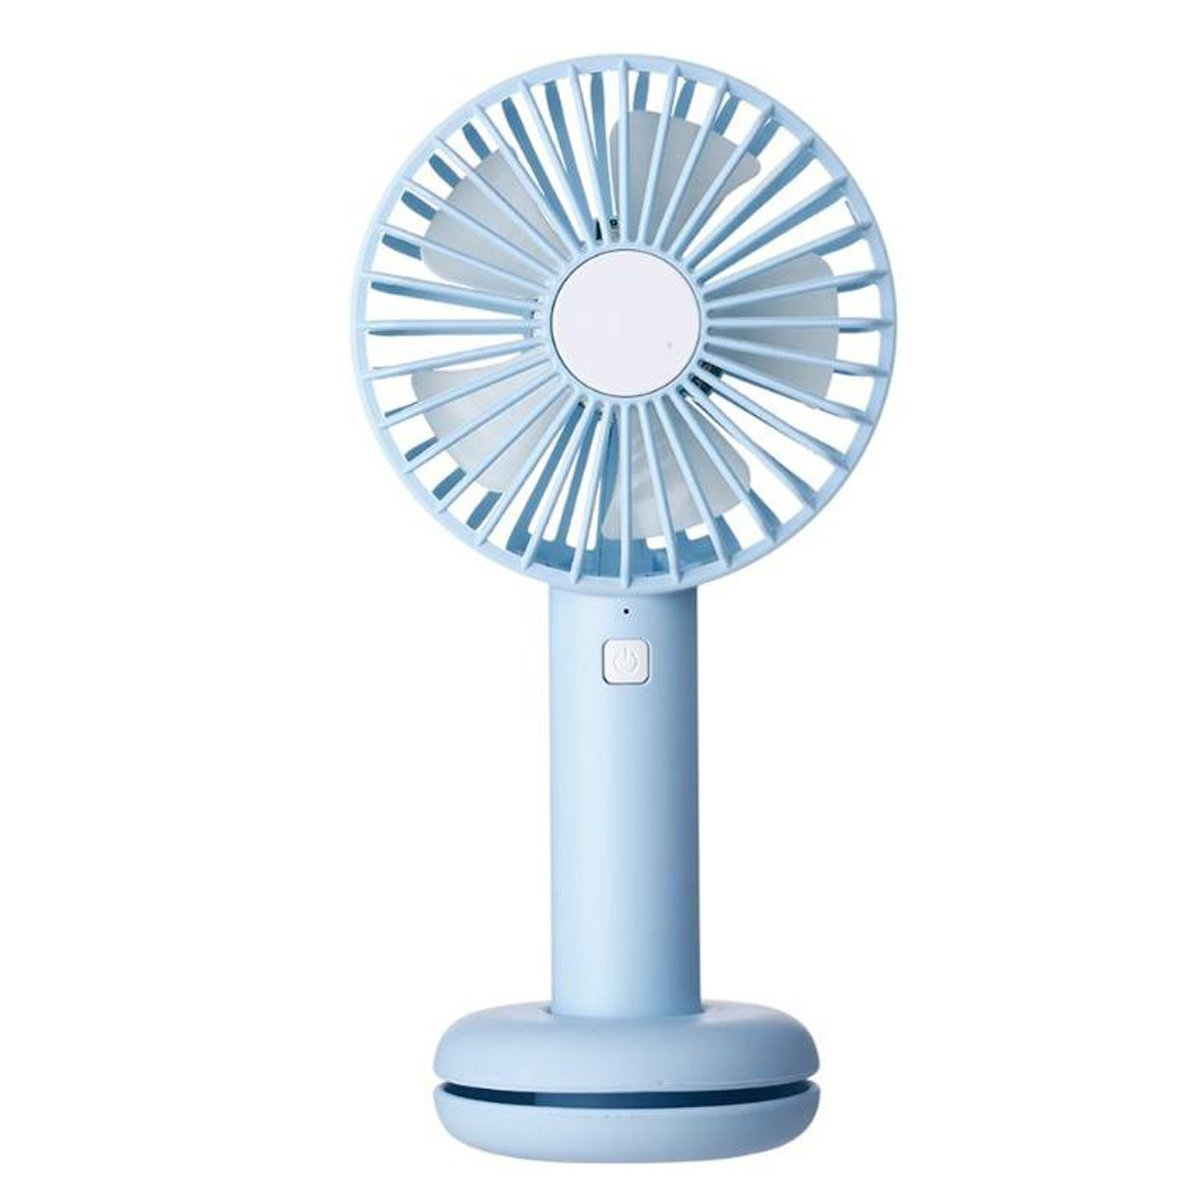 Mini Handheld Personal Fan with 7 Color Changing Led Night Light USB Rechargeable Battery Operated Cooling Fan Portable Desk Fan with cable base for Office Outdoor Household Traveling Dormitory (Blue)